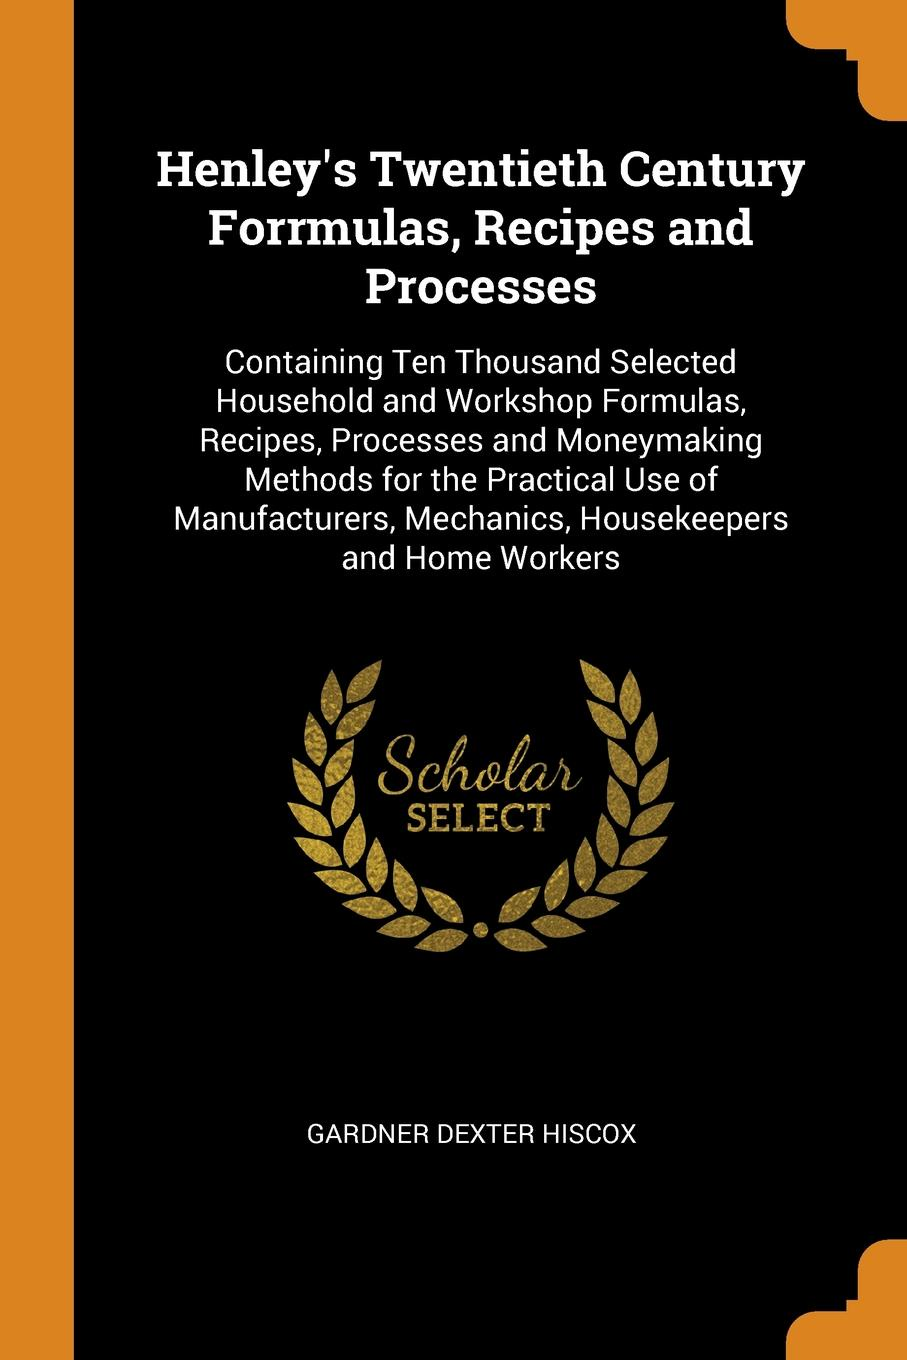 Gardner Dexter Hiscox Henley.s Twentieth Century Forrmulas, Recipes and Processes. Containing Ten Thousand Selected Household and Workshop Formulas, Recipes, Processes and Moneymaking Methods for the Practical Use of Manufacturers, Mechanics, Housekeepers and Home Workers